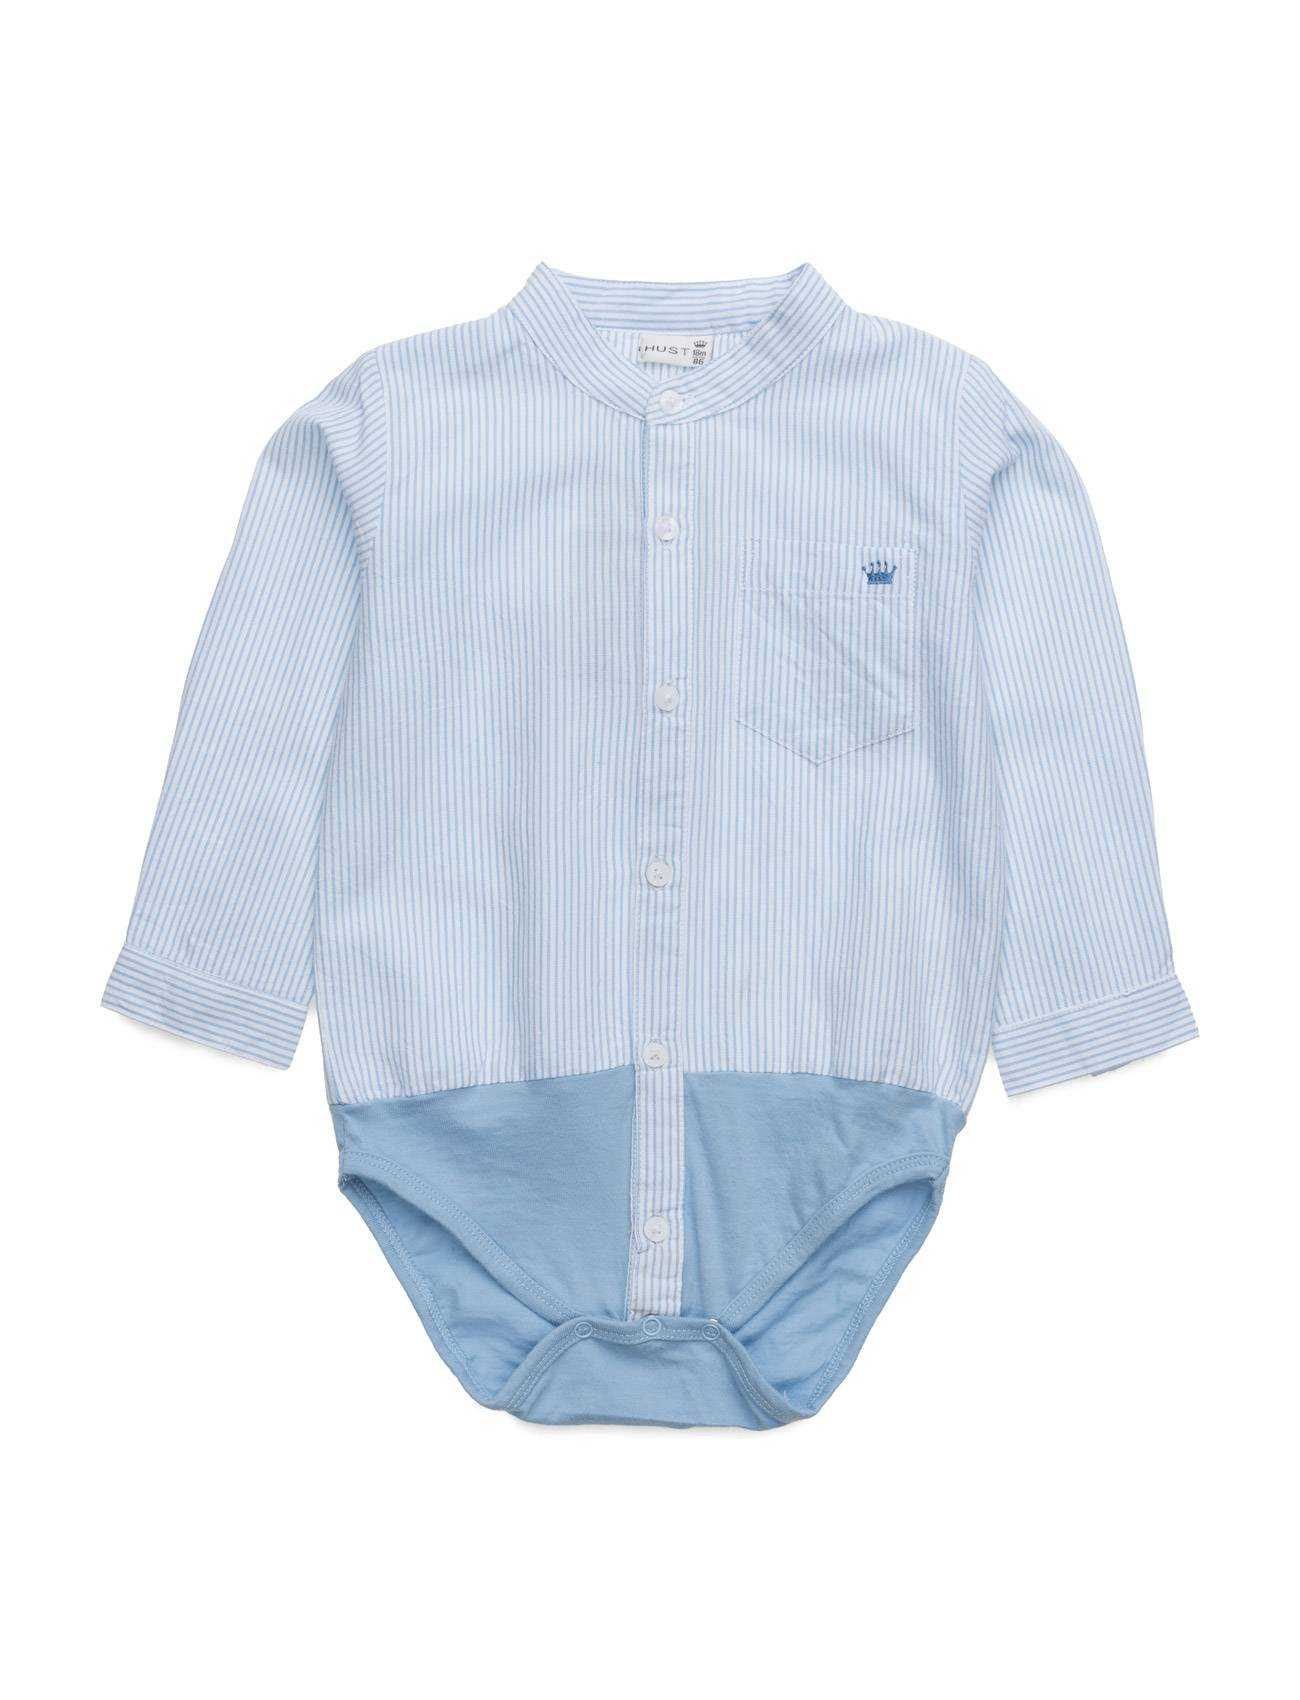 Hust & Claire Shirt Body